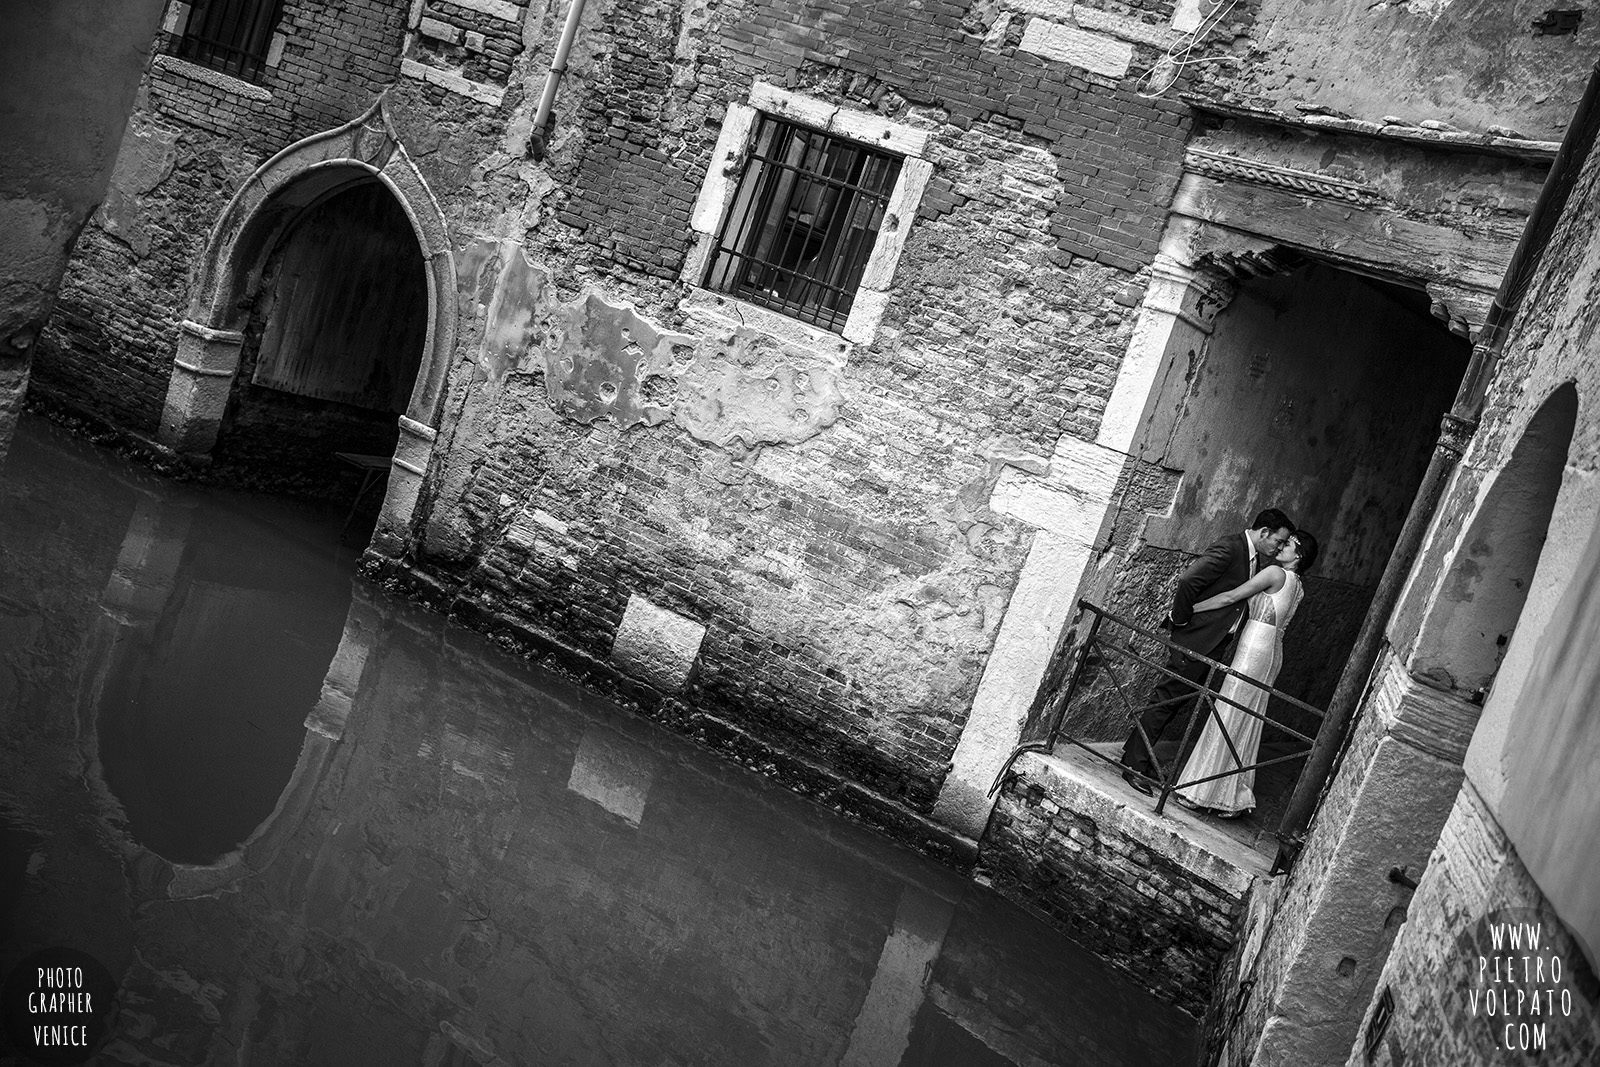 venice-wedding-photographer-honeymoon-photoshoot-for-couple-romantic-vacation-tour-20161114_05